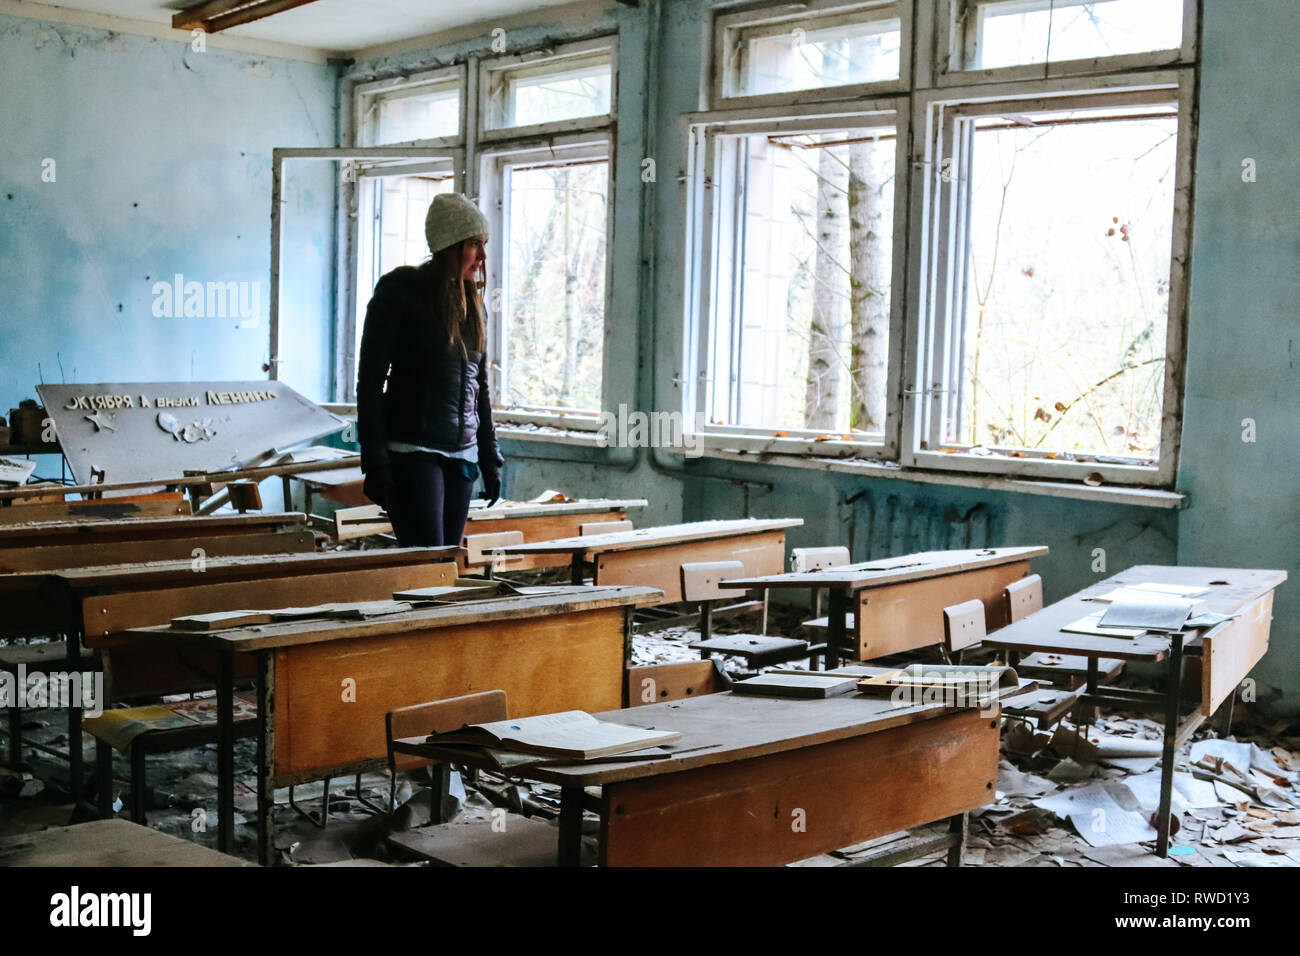 Woman walks through a classroom that was abandoned long ago in wake of the Chernobyl nuclear disaster - Stock Image